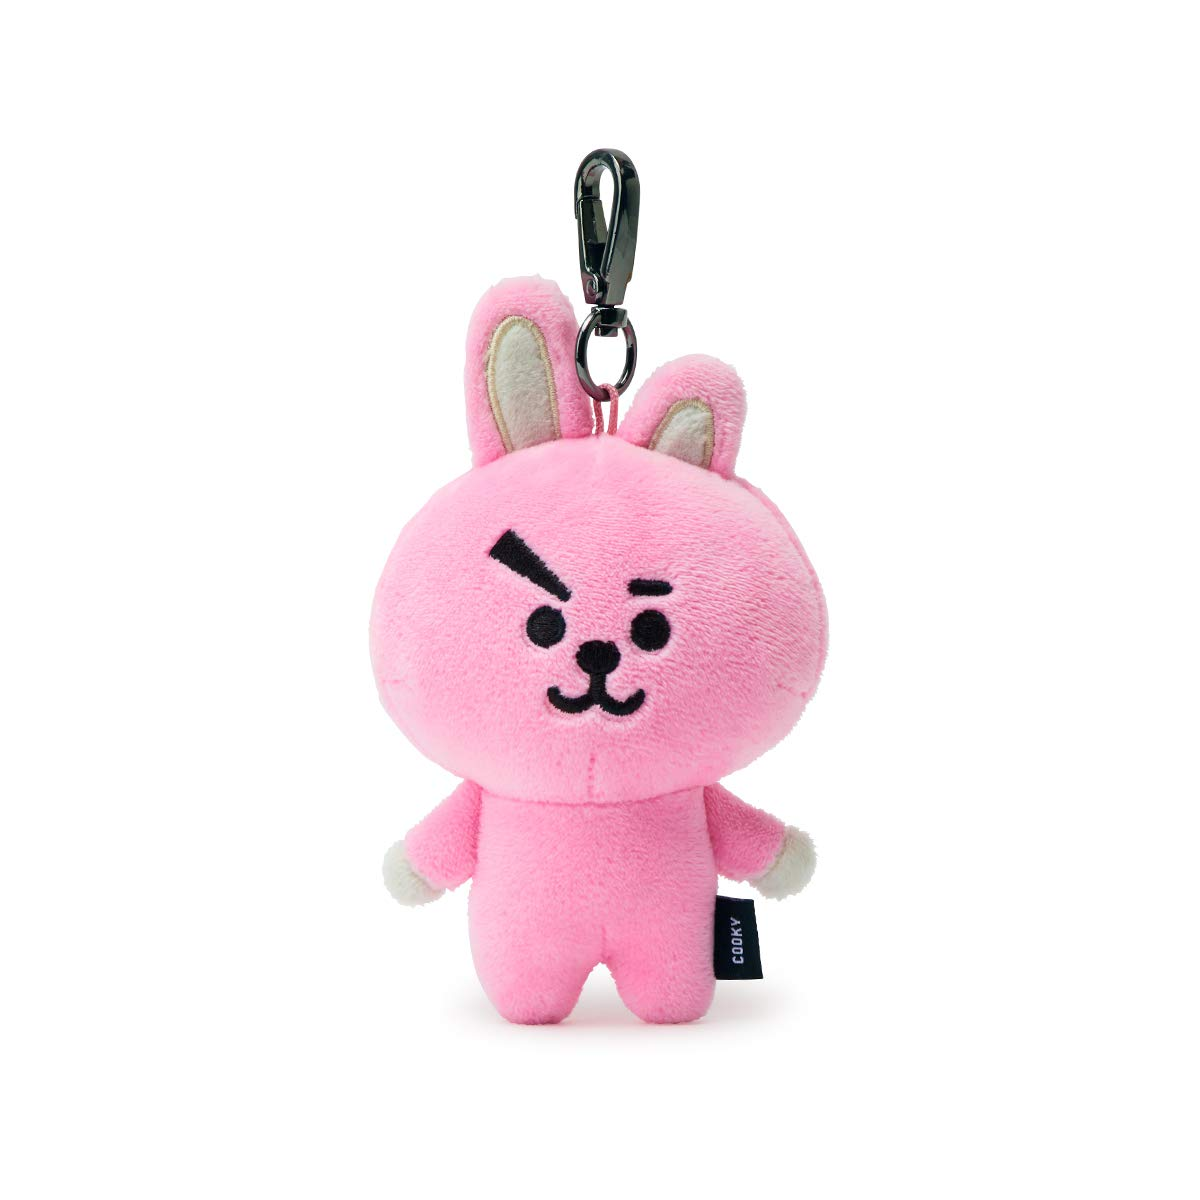 BT21 Official Merchandise by Line Friends - Cooky Character Doll Keychain Ring Cute Handbag Accessories by LINE FRIENDS